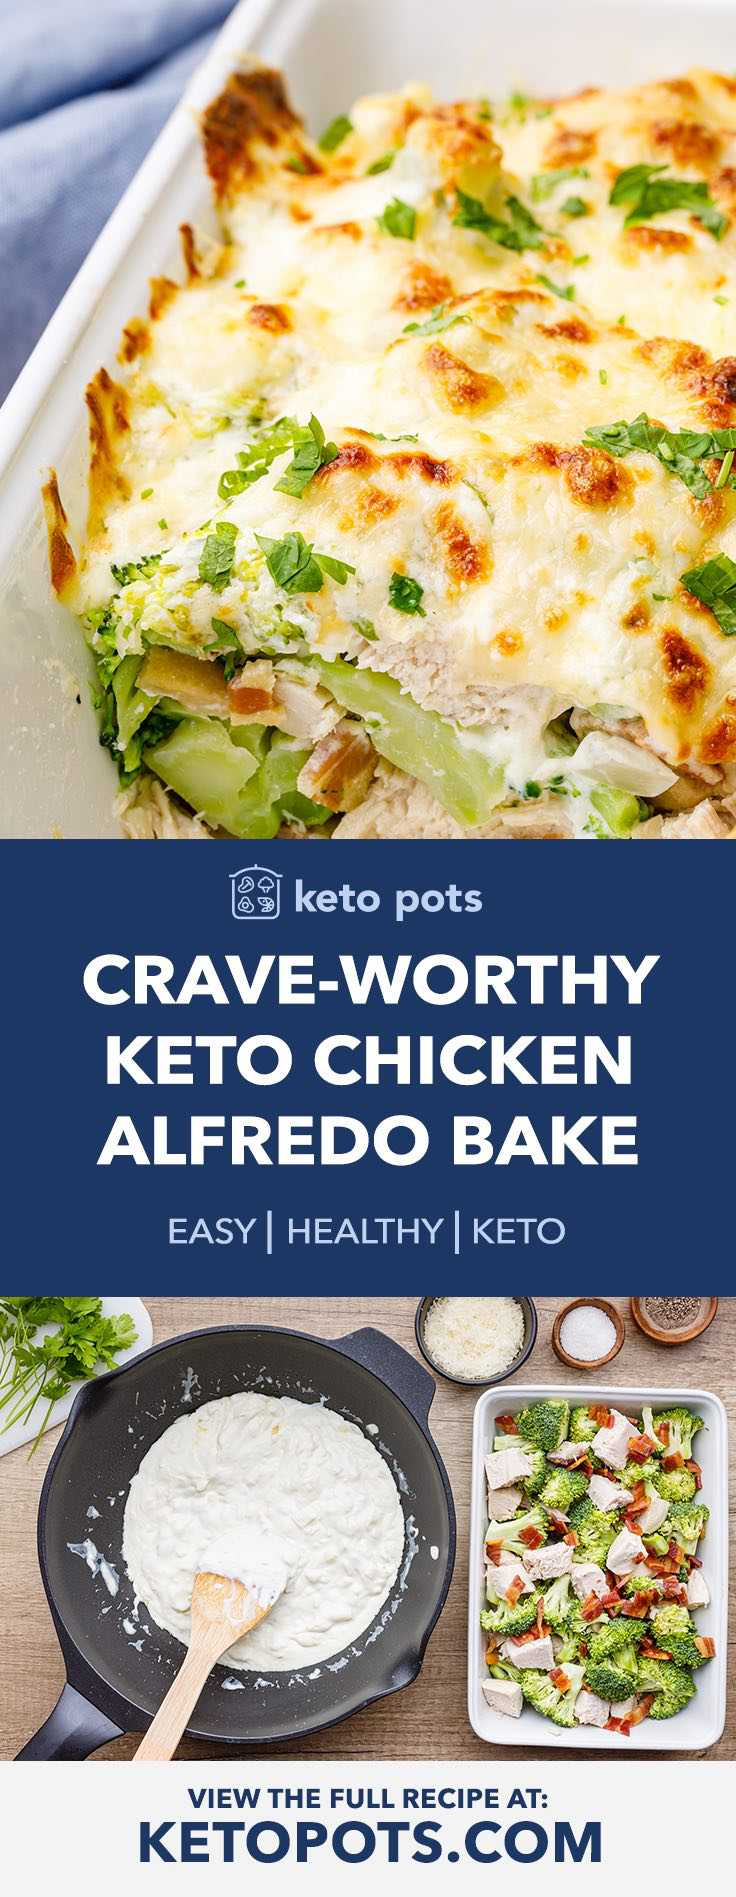 Crave-worthy Keto Chicken Alfredo Bake with Broccoli and Bacon